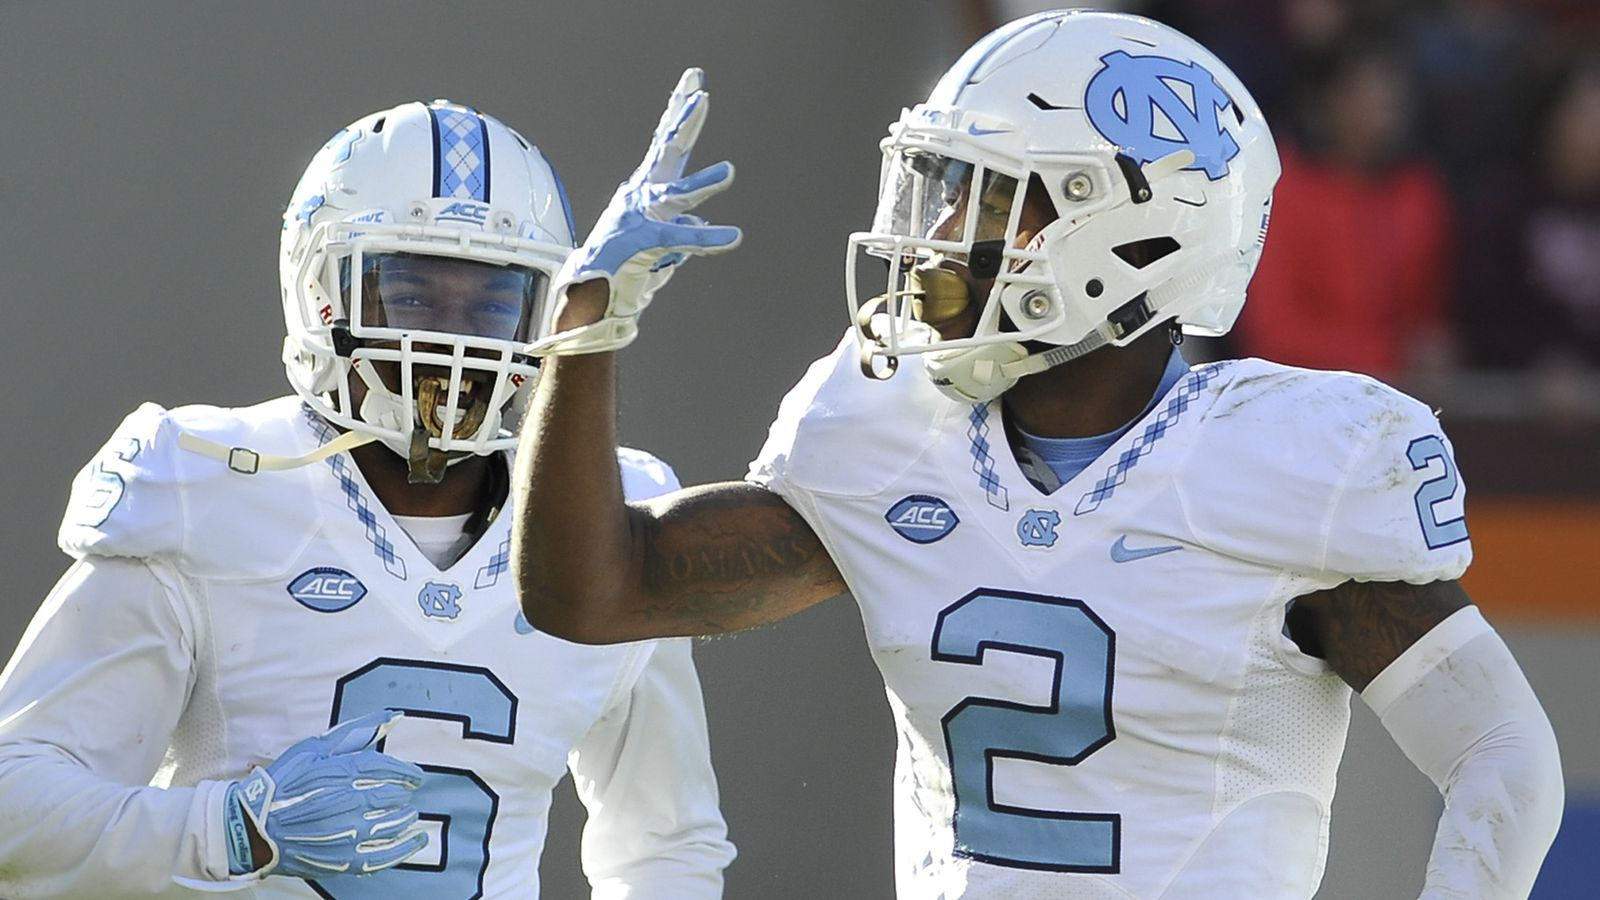 The Shoe That Didn't Drop: The Expected UNC Football ...